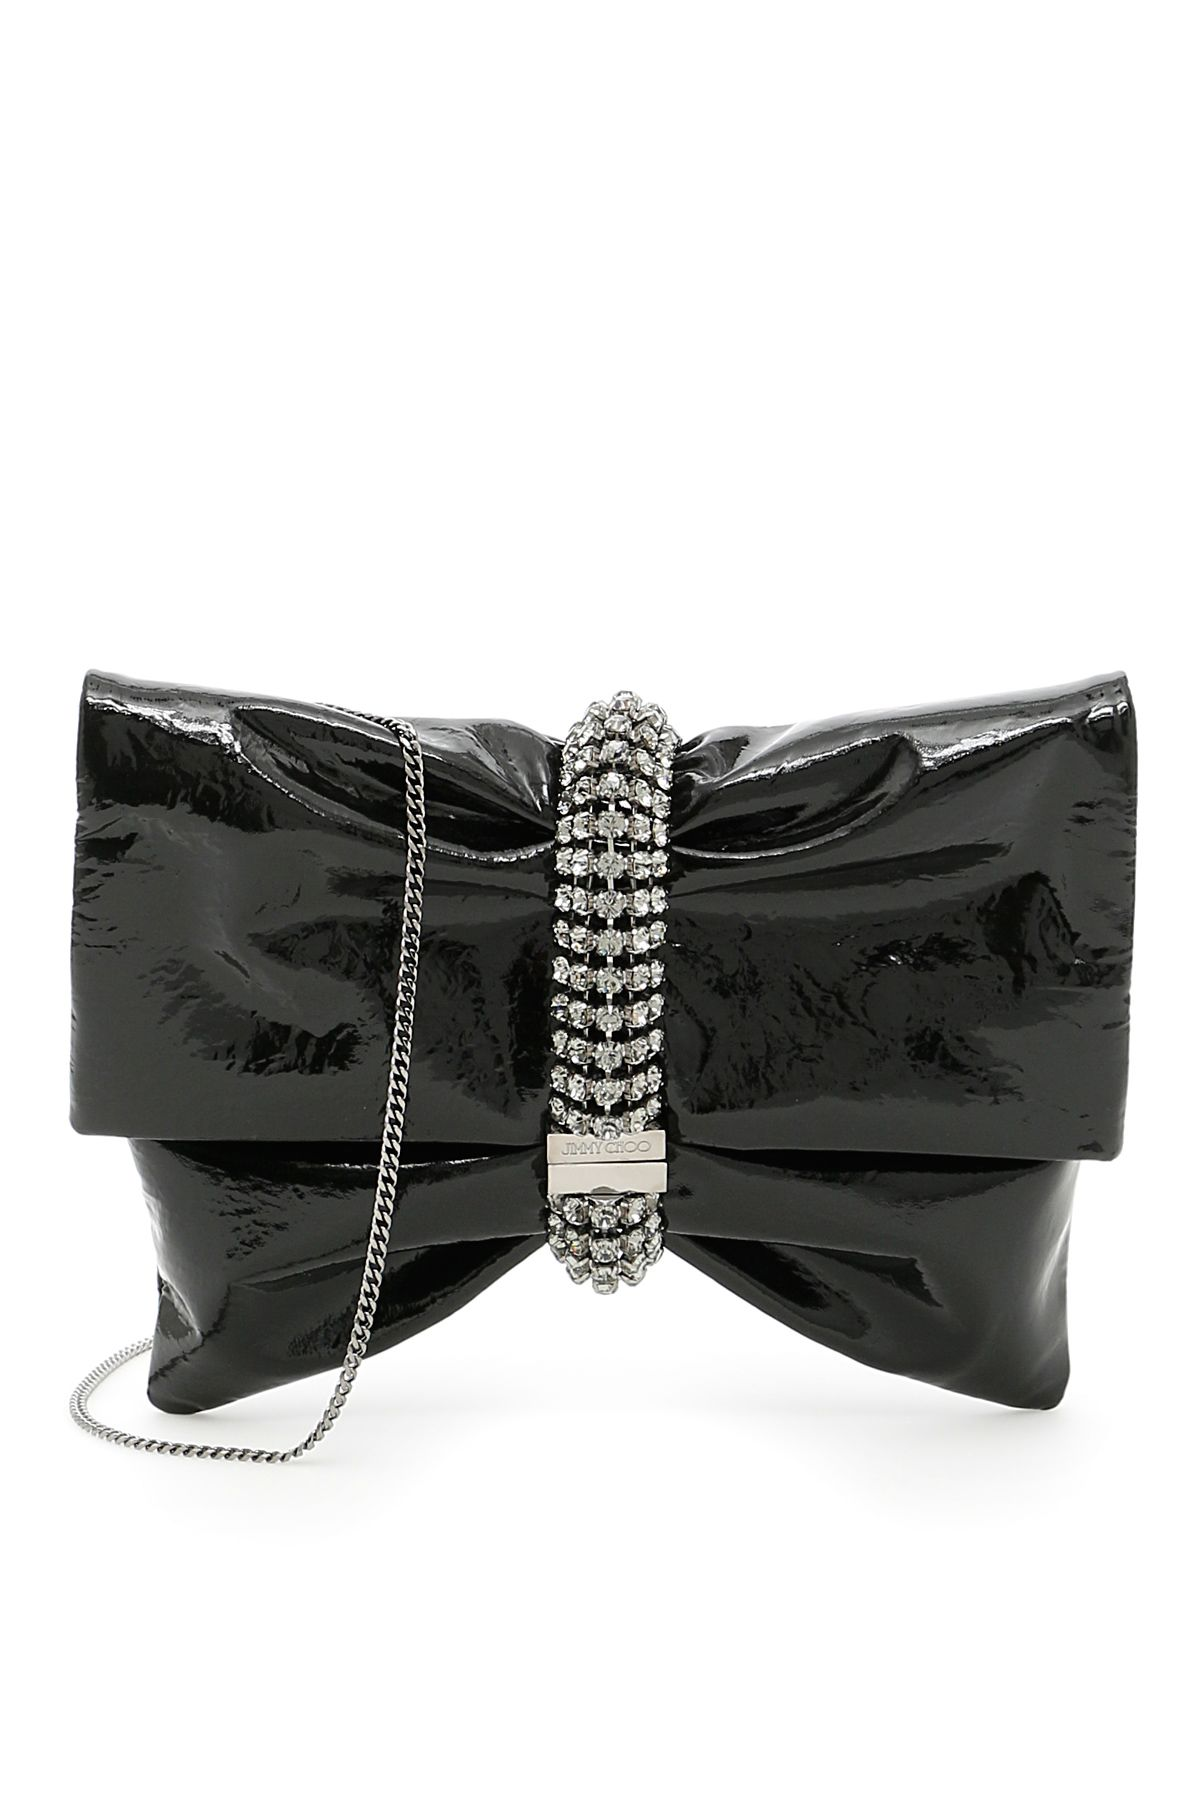 Medium Chandra Clutch